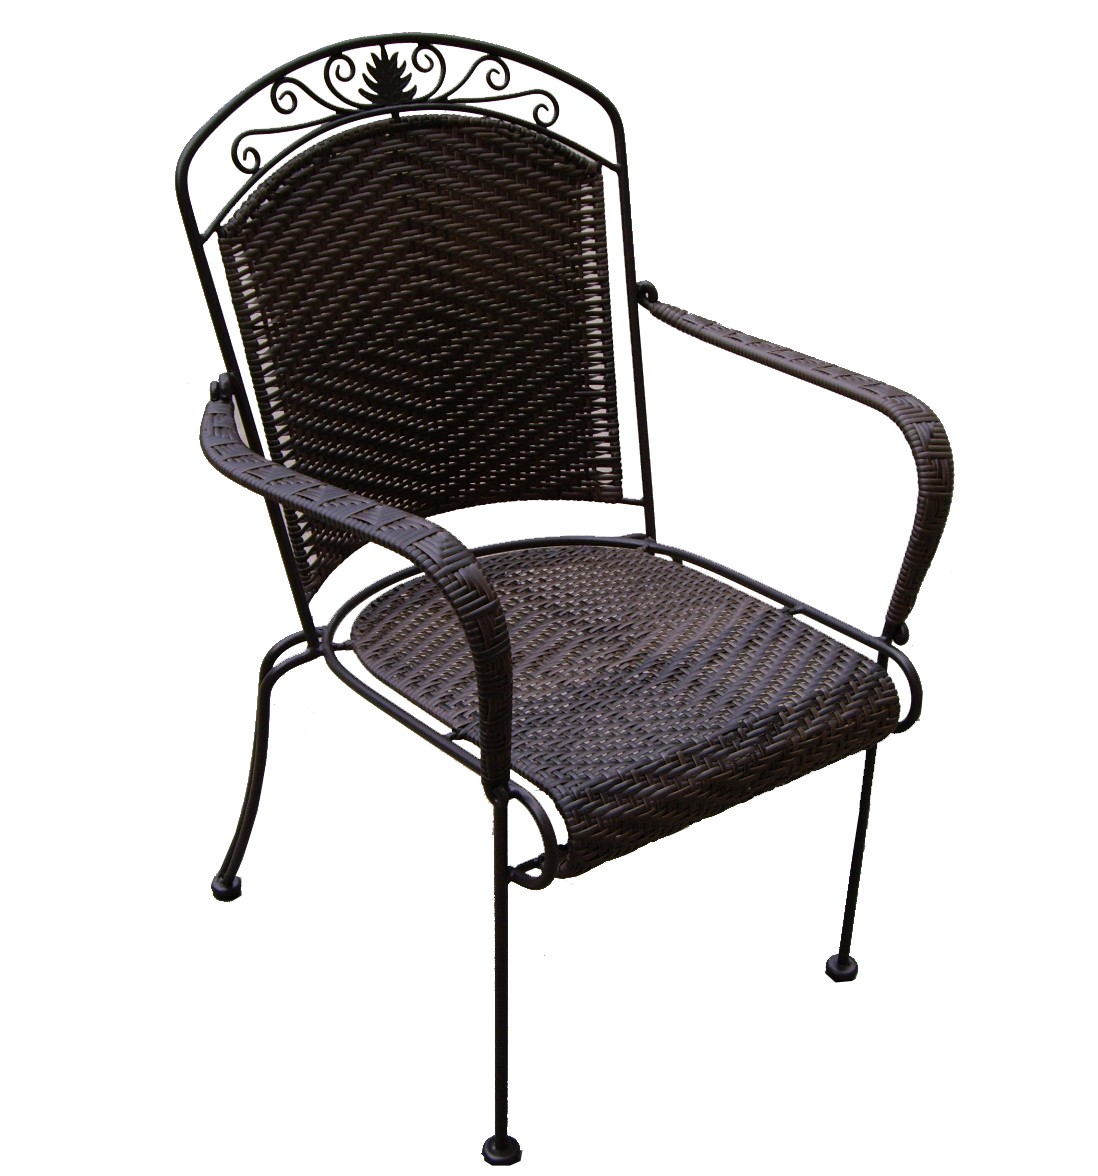 Wrought Iron Kitchen Chairs: Wrought Iron Chairs Designs.